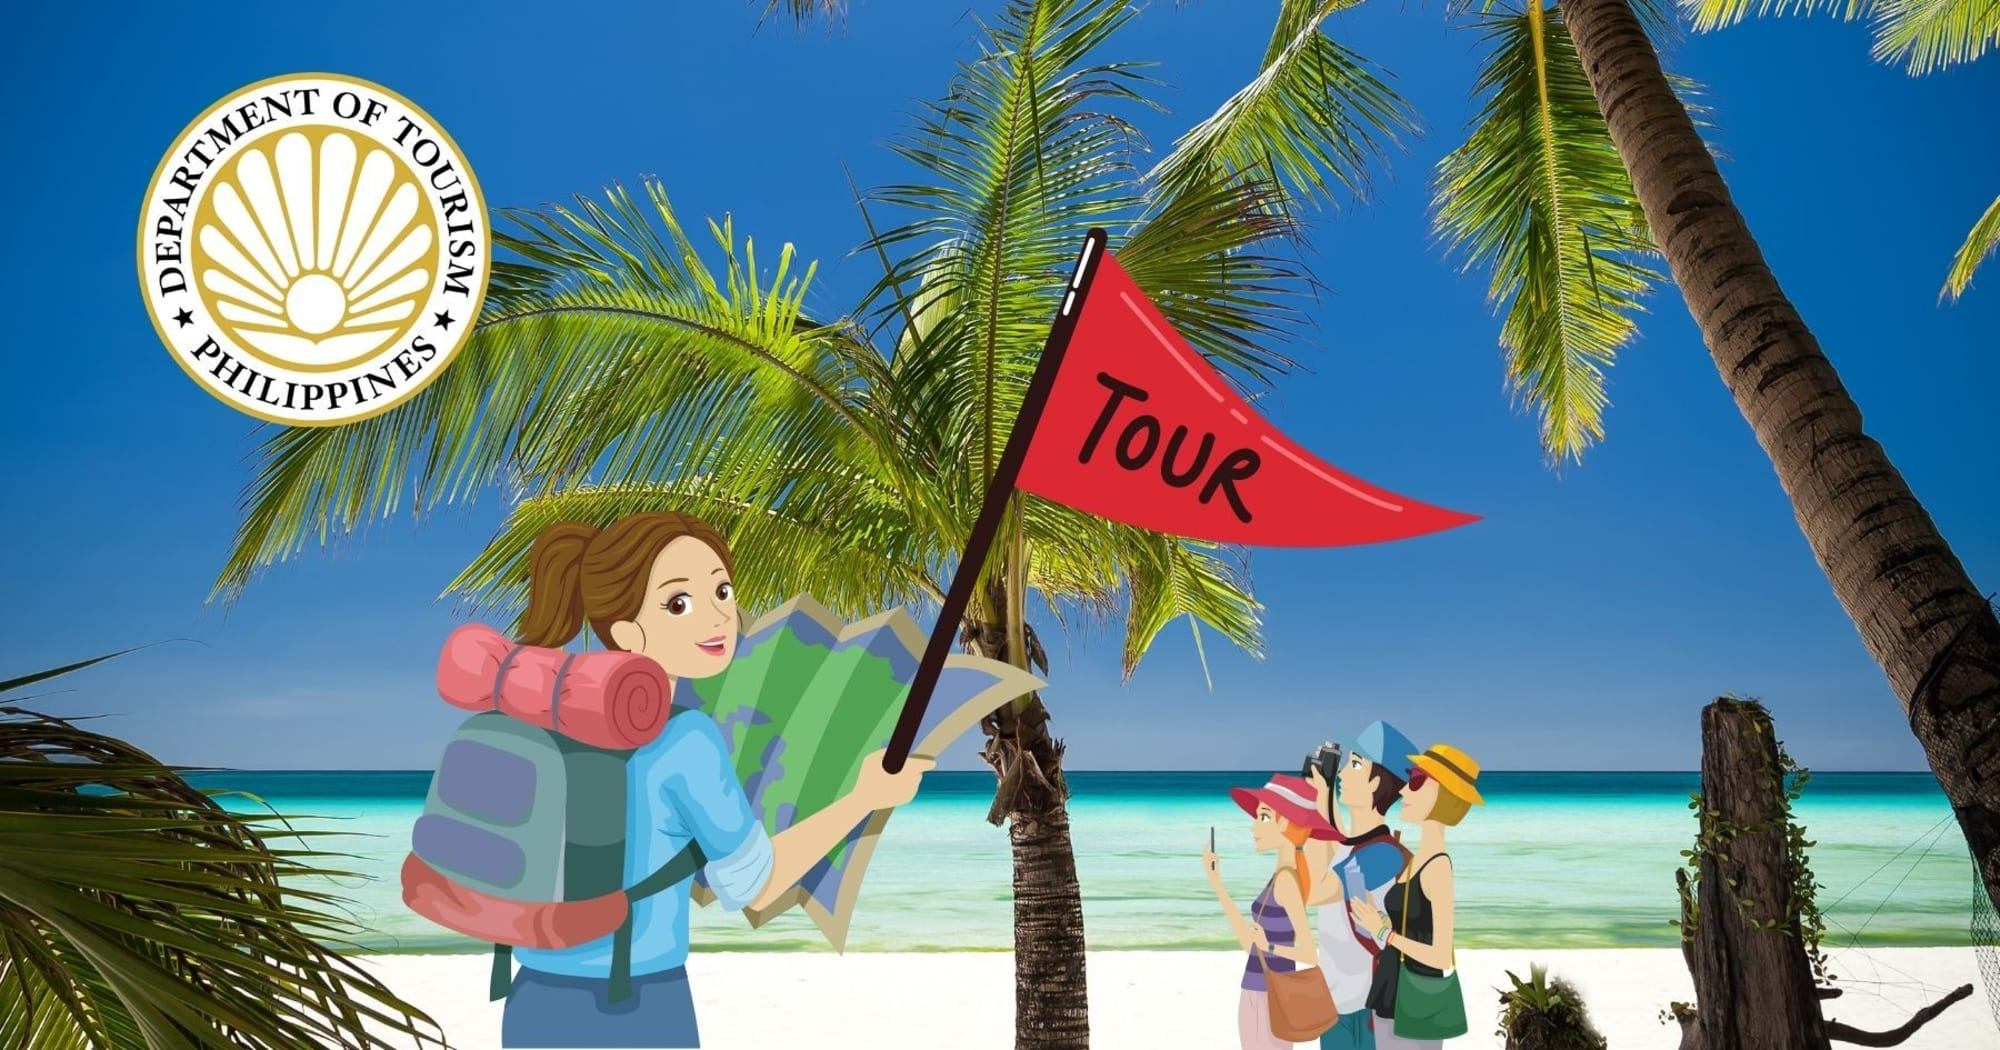 Tour guides and other service providers to include in A4 priority list